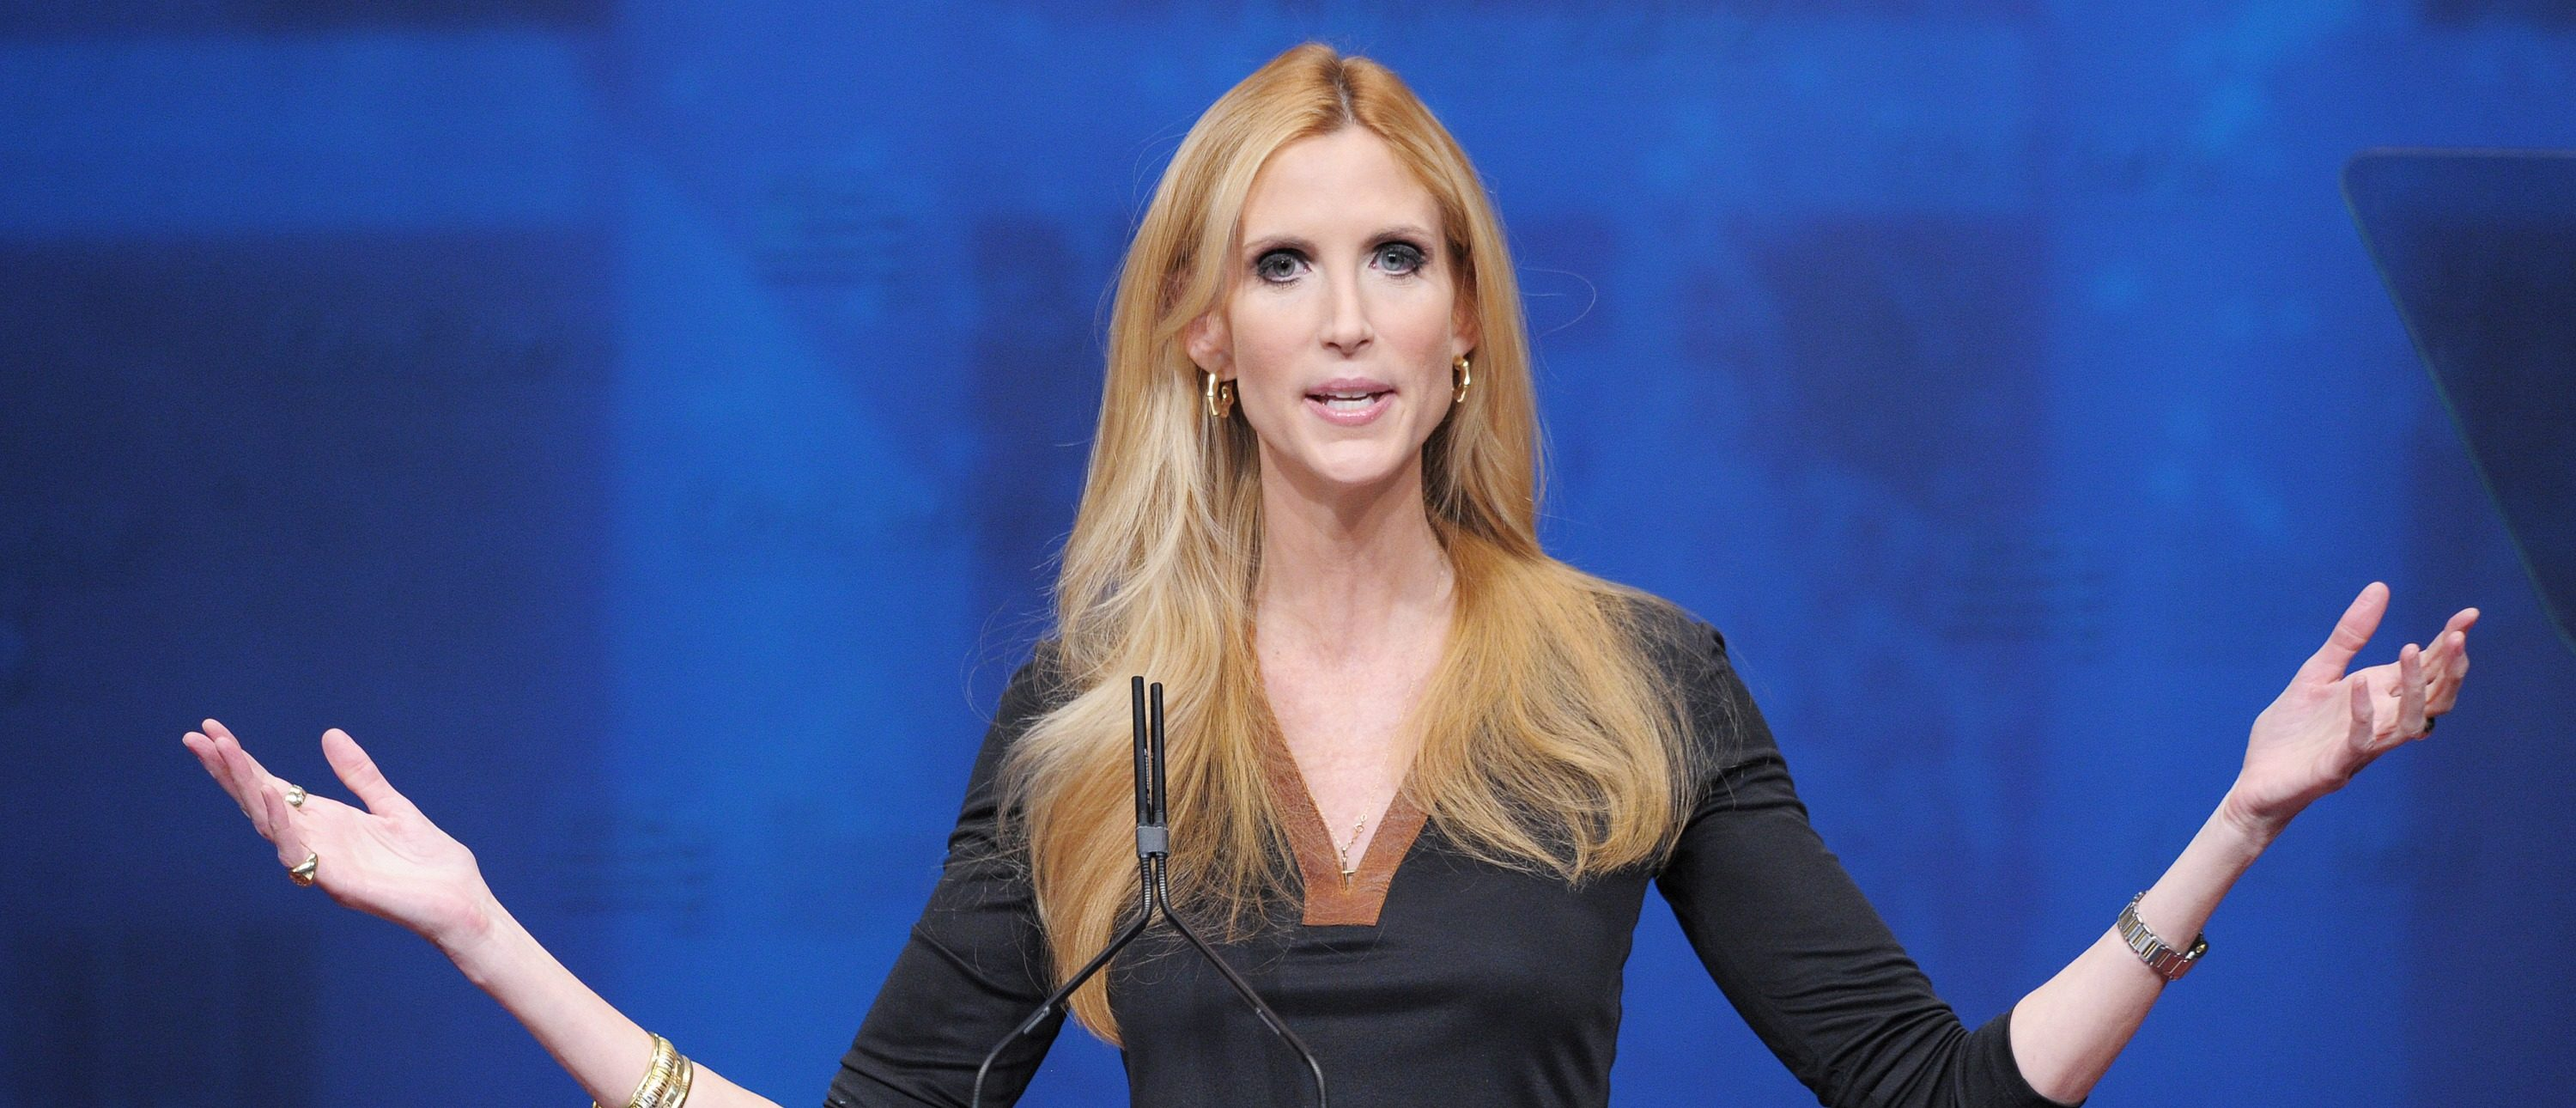 Author Ann Coulter speaks during an address to the 39th Conservative Political Action Committee February 10, 2012 in Washington, DC. AFP PHOTO/Mandel NGAN (Photo credit should read MANDEL NGAN/AFP/Getty Images)